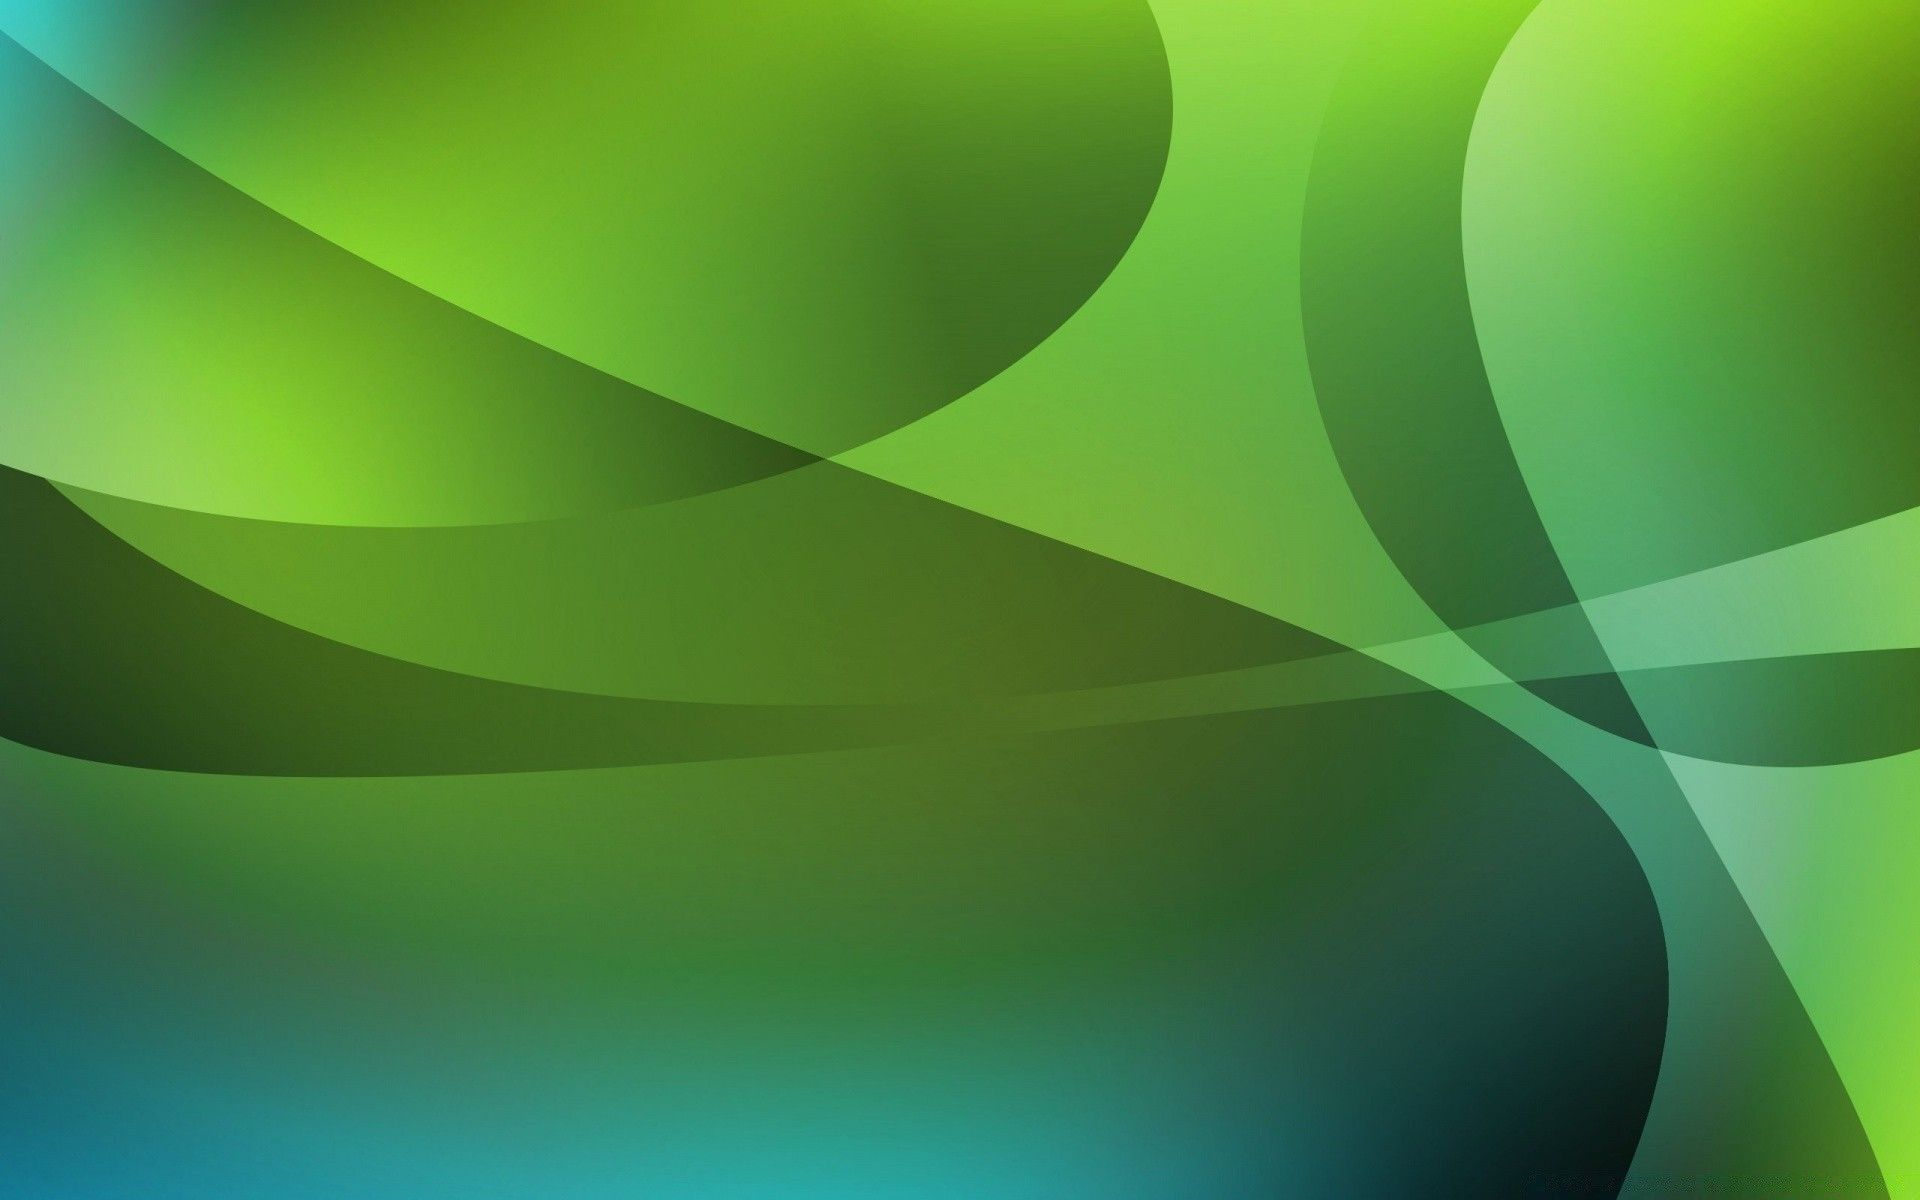 Abstract Graphic Design Green - Fondos de pantalla gratis